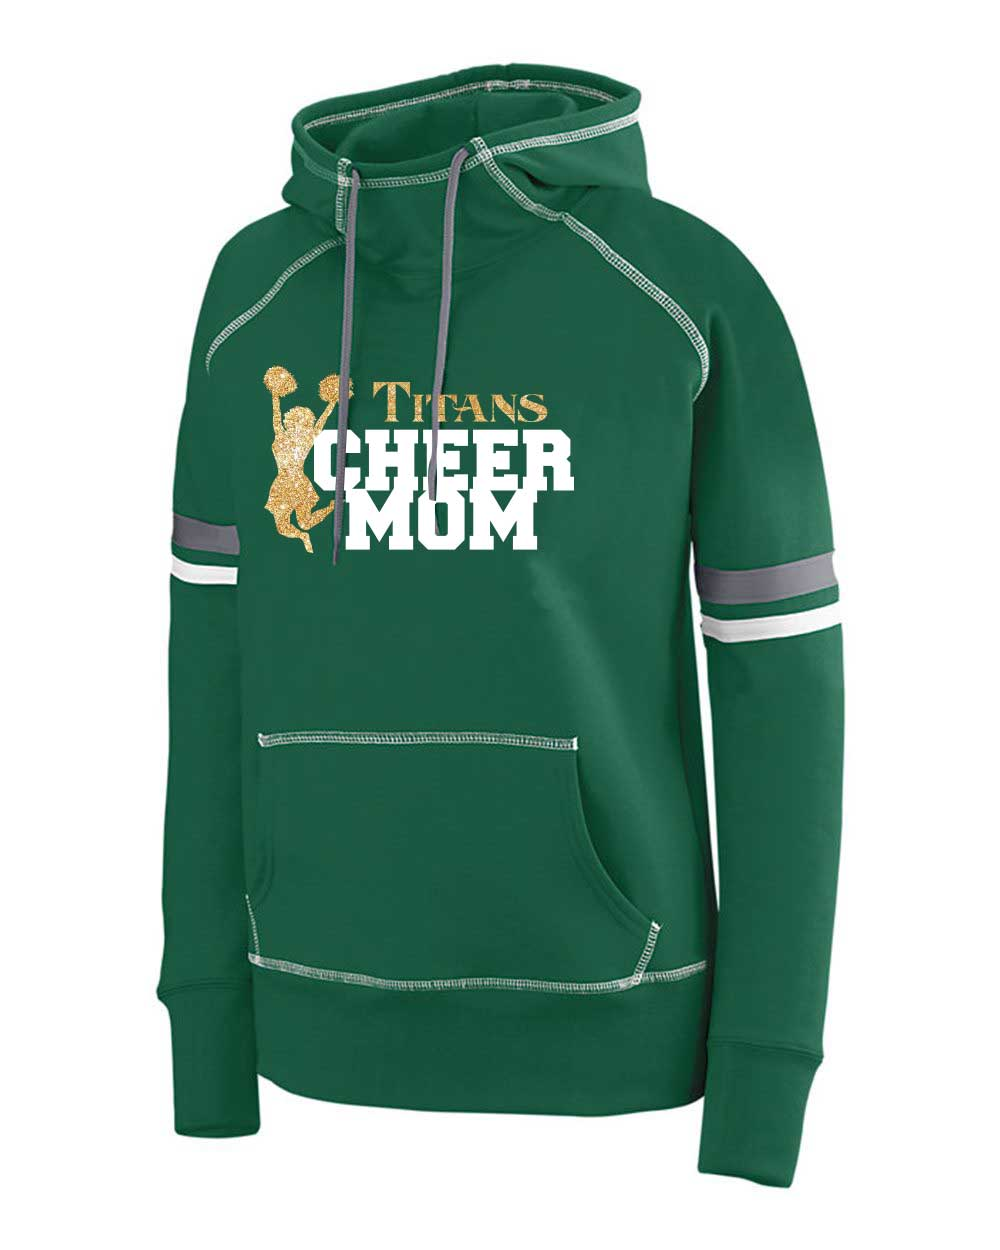 Augusta_Sportswear_5440_Dark_Green__White__Graphite_Side_High2cheermom